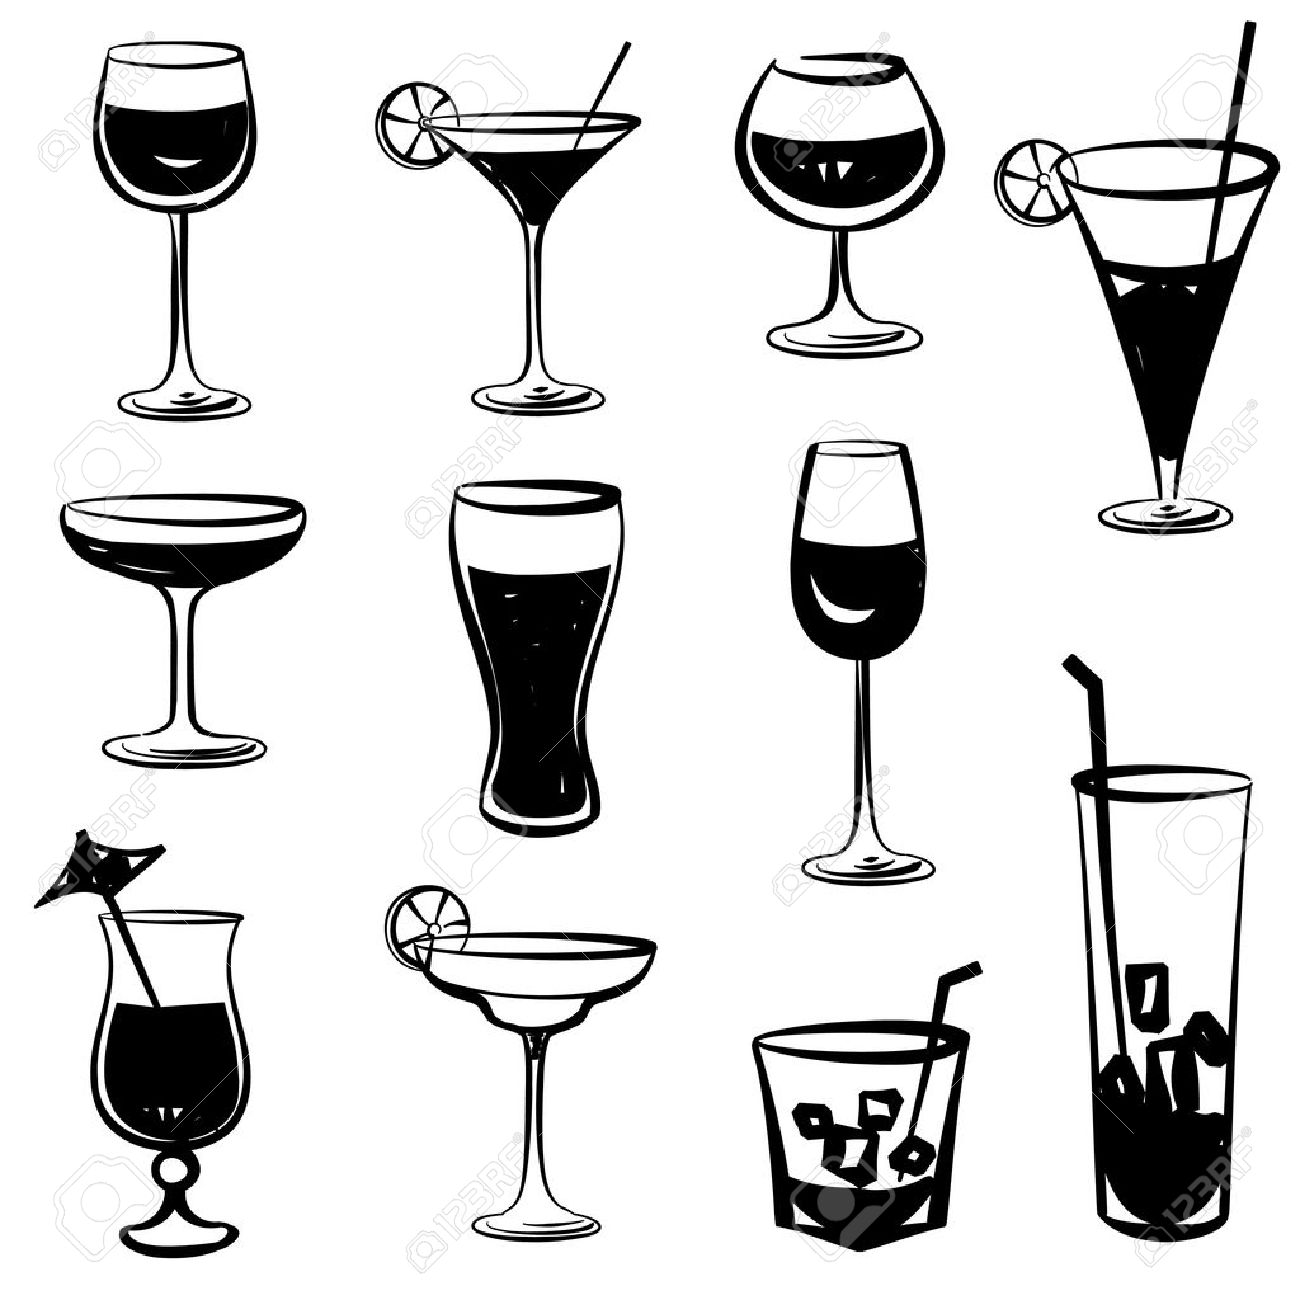 glass vector silhouette collection set of different cocktail rh 123rf com grass vector grass vector free